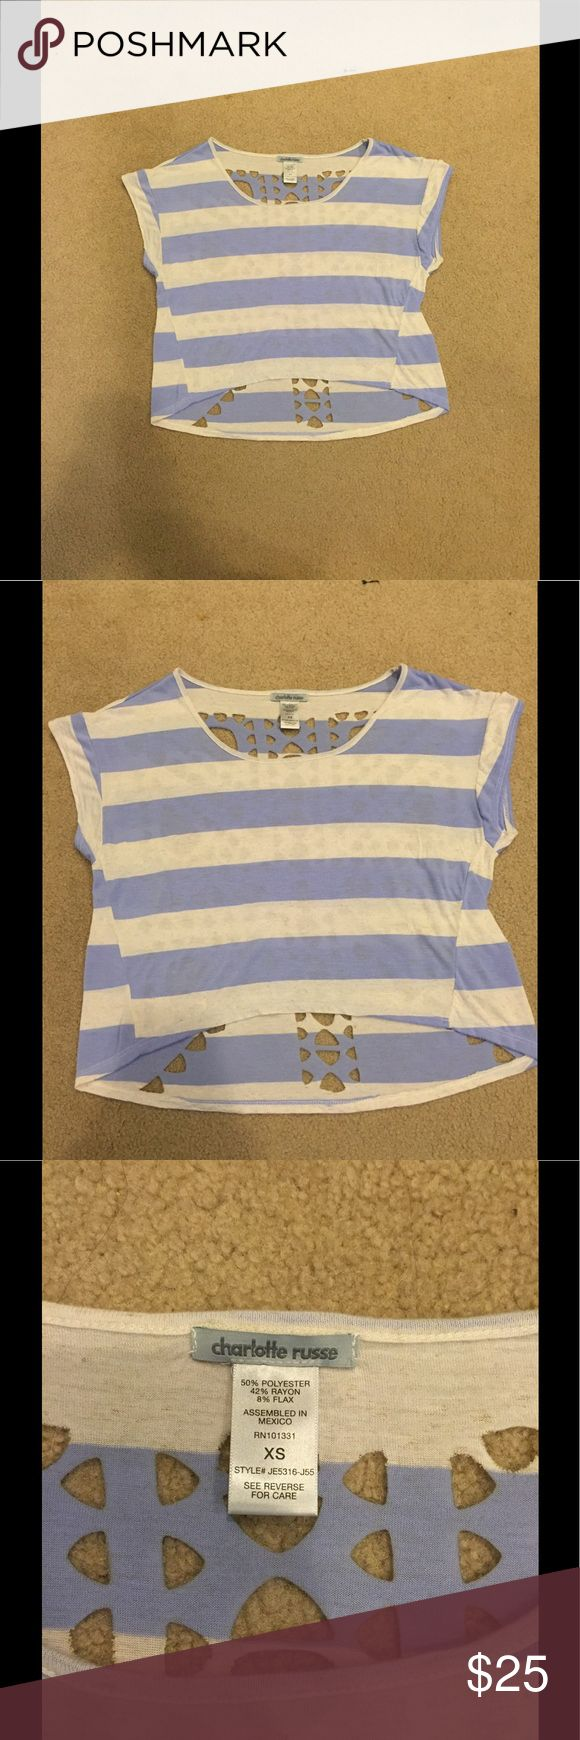 Charlotte Russe Boxy Crop Top This top is from the store Charlotte Russe. It comes in the size extra small (xs) and is in a perfect brand new looking condition, considering its only been worn once. It's periwinkle and white striped, both front and back, and had a beautiful cut-out detail design on the back of the top. It's a boxy high-low crop top. But not super cropped at all. It's super cute and summery. Charlotte Russe Tops Crop Tops